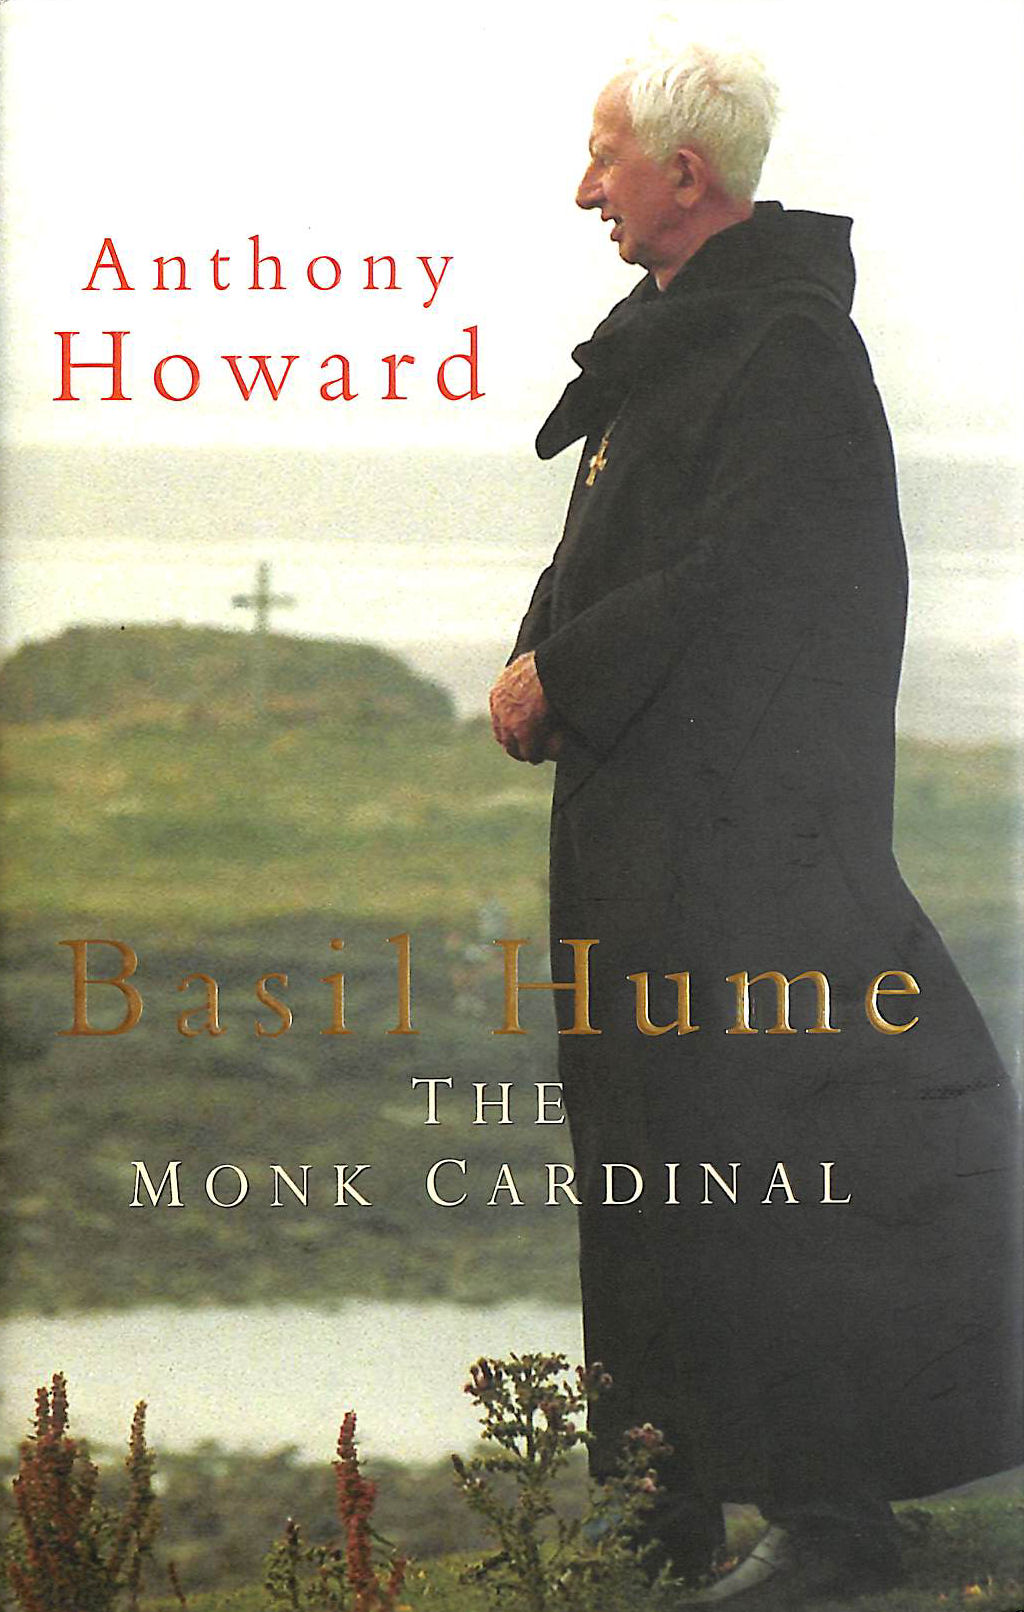 Image for Basil Hume: The Monk Cardinal